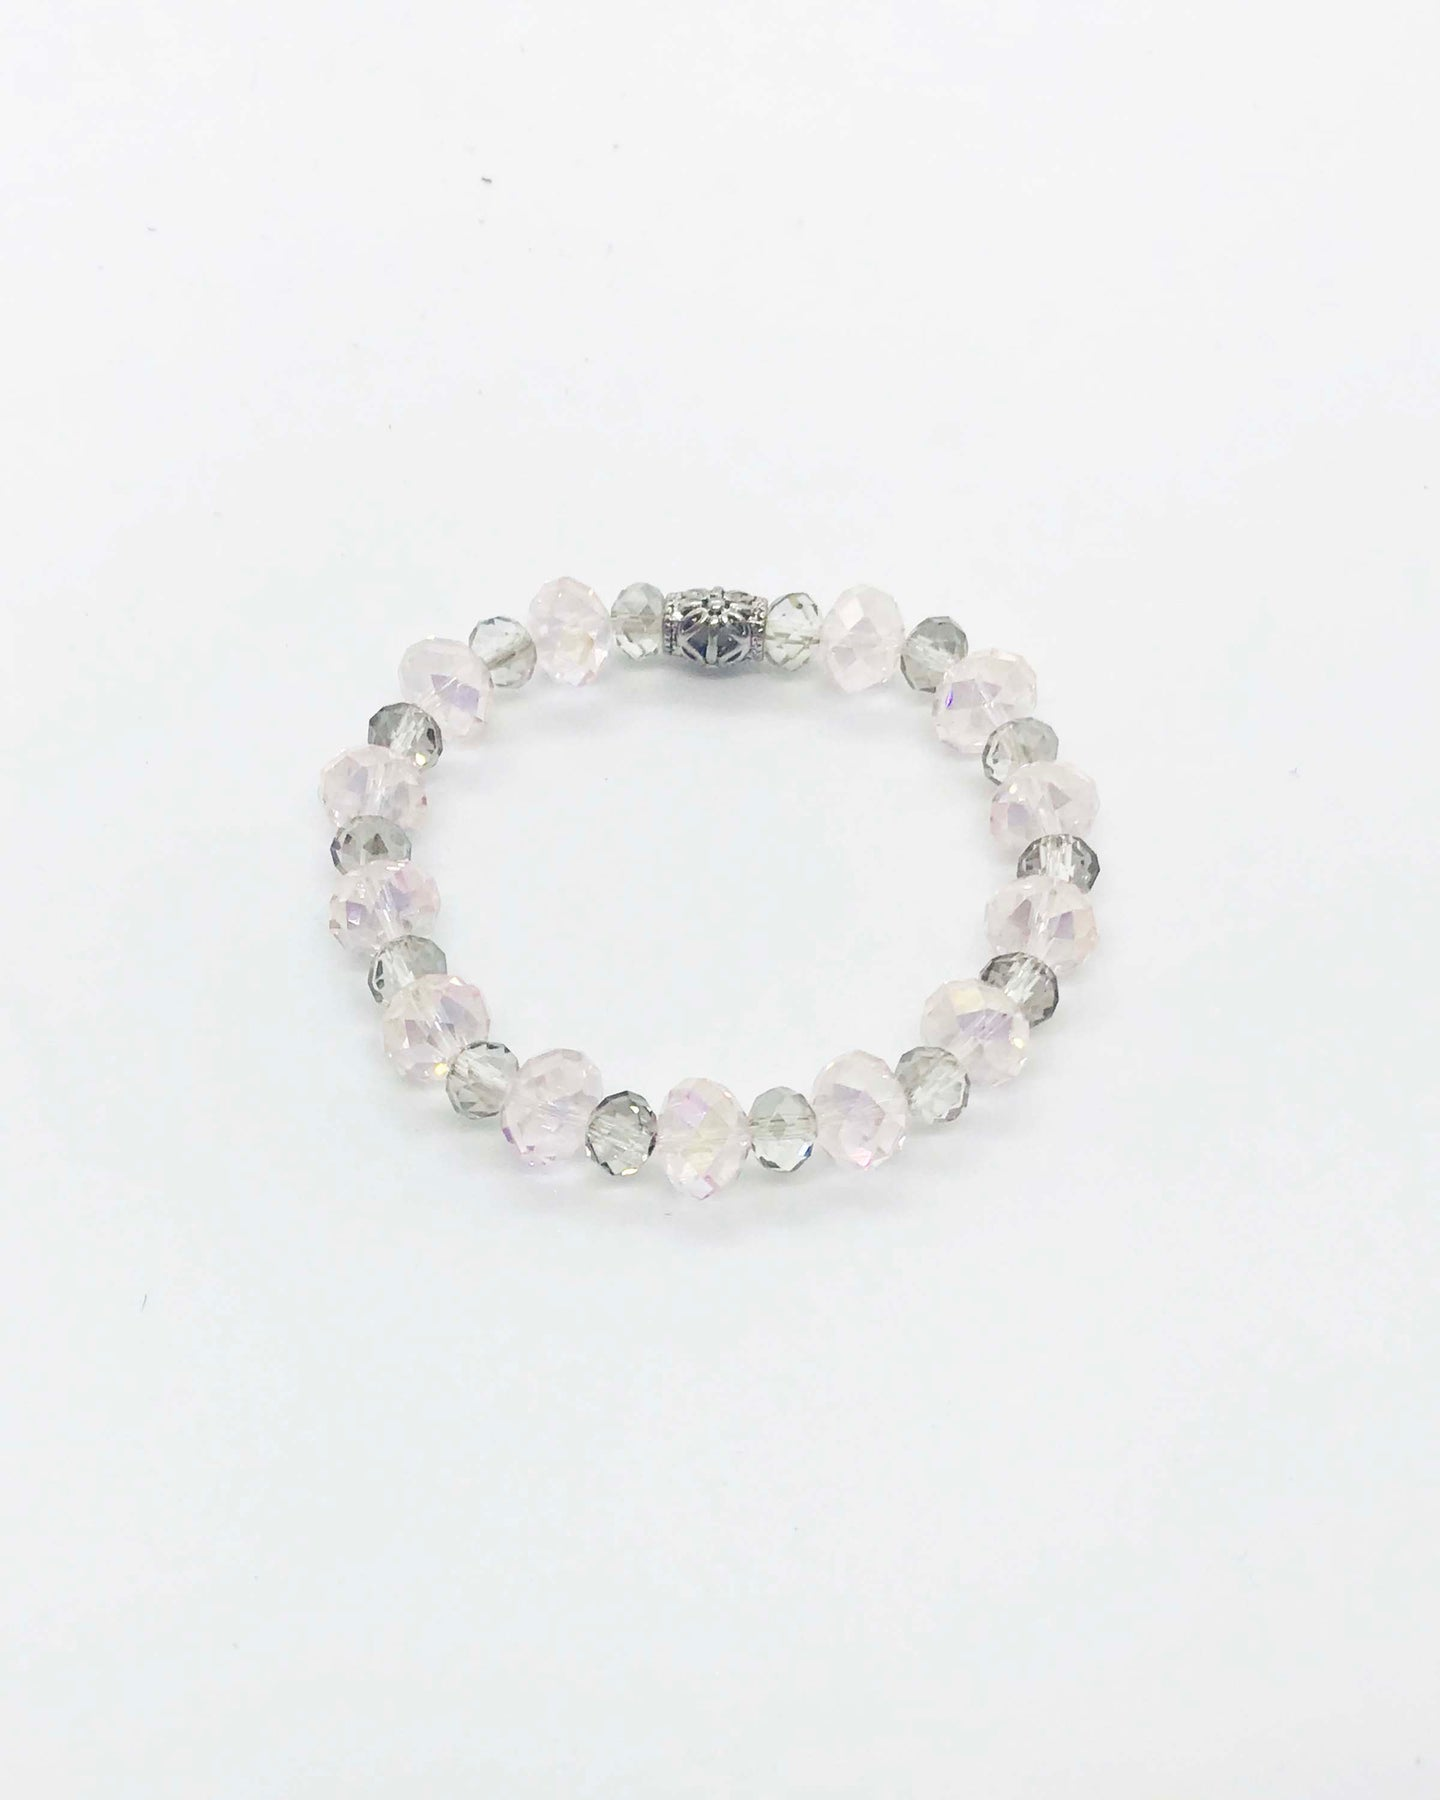 Glass Bead Stretchy Bracelet - B736